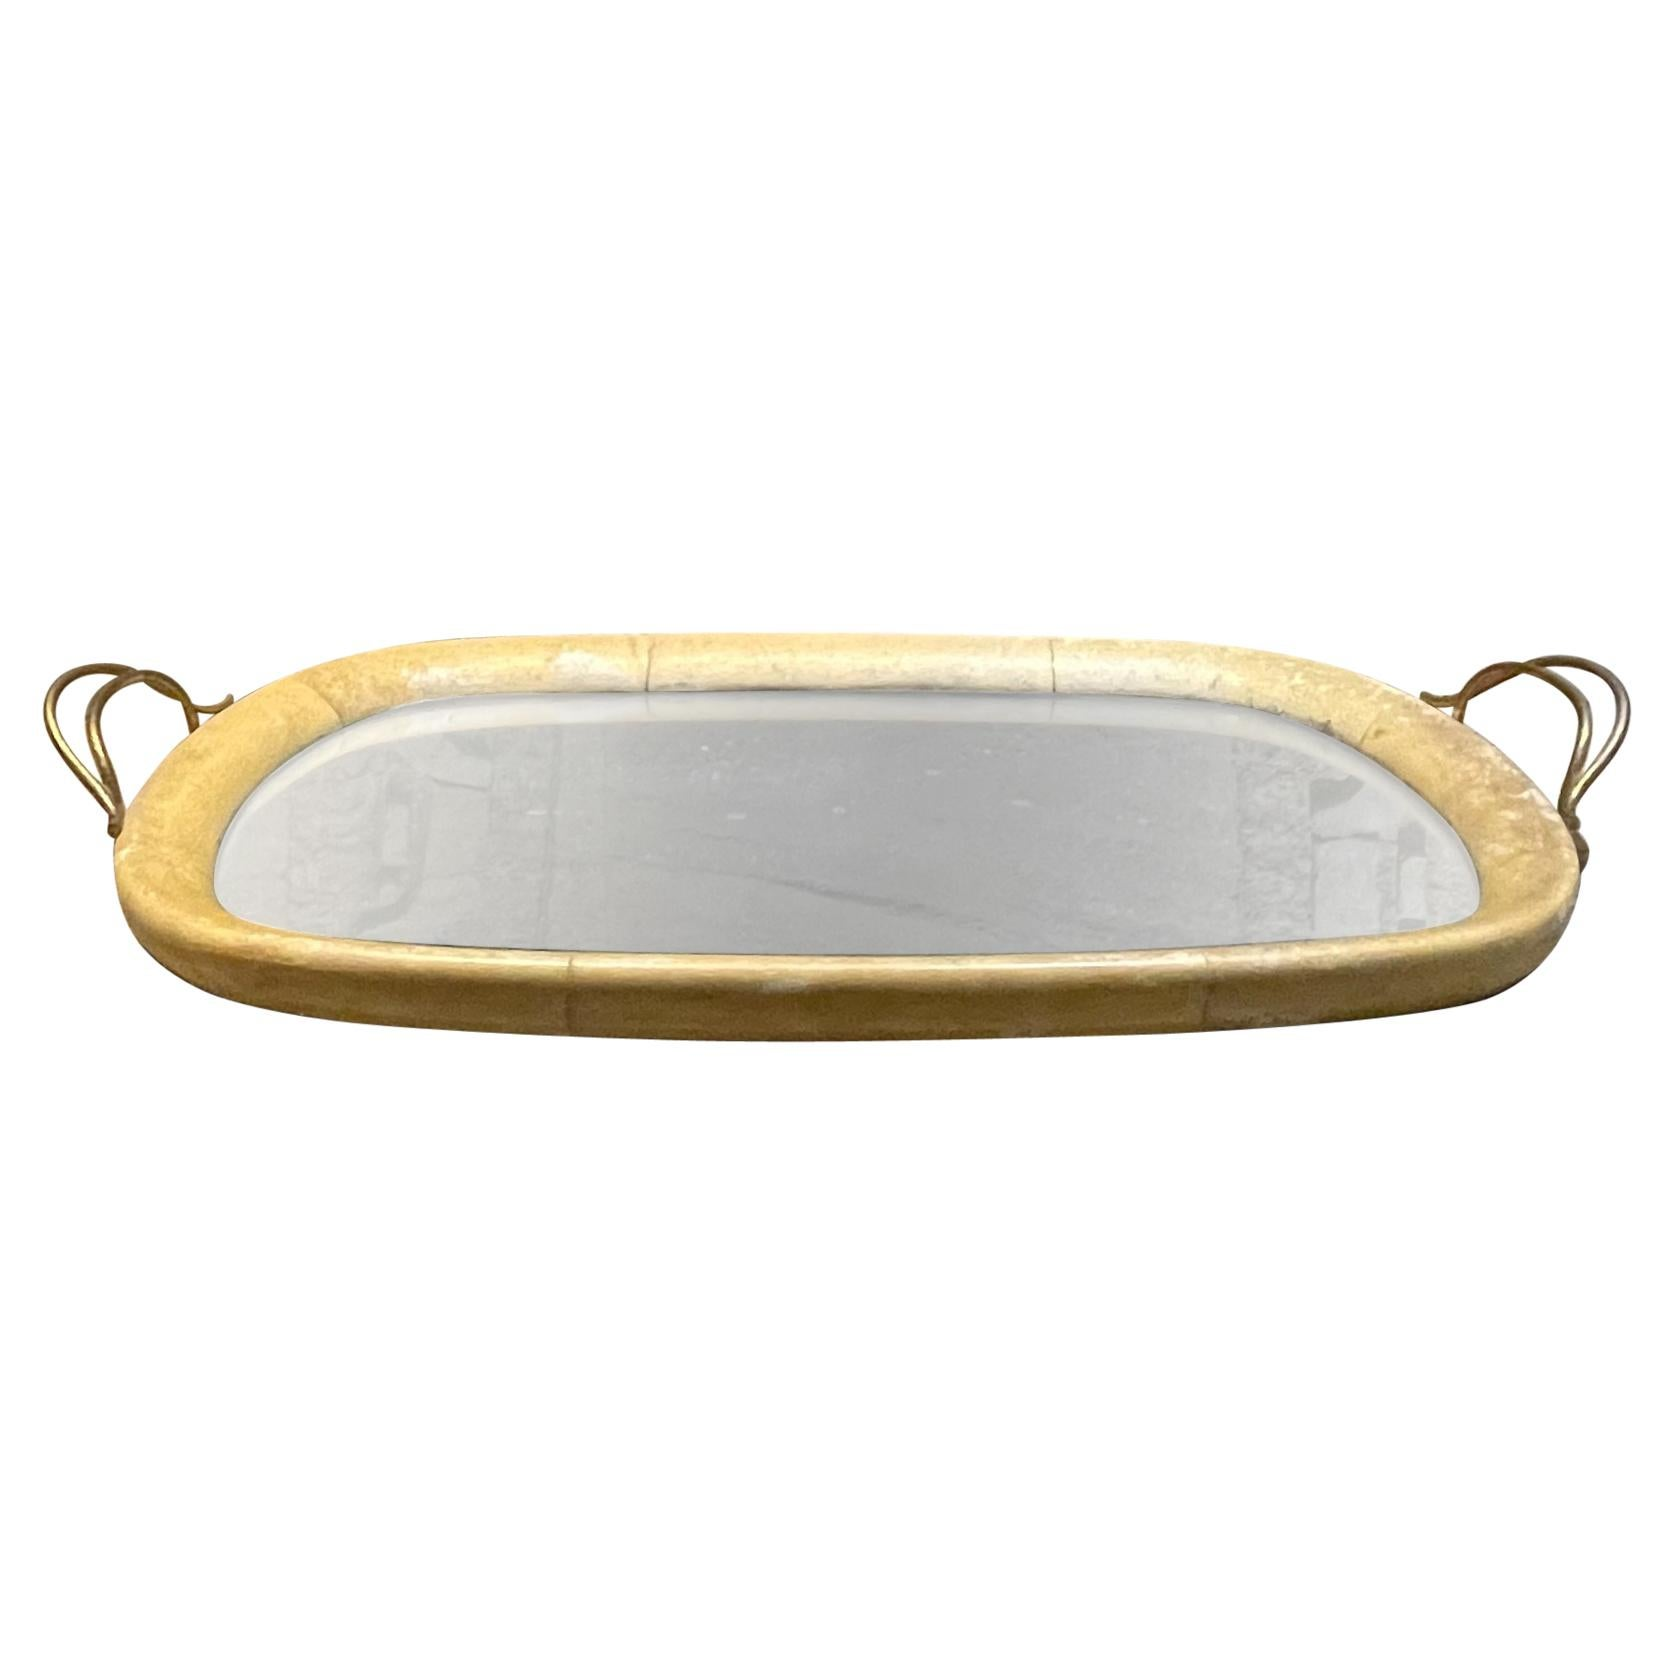 Aldo Tura Macabo Exquisite Serving Tray Mirrored Goatskin and Brass Italy 1940s